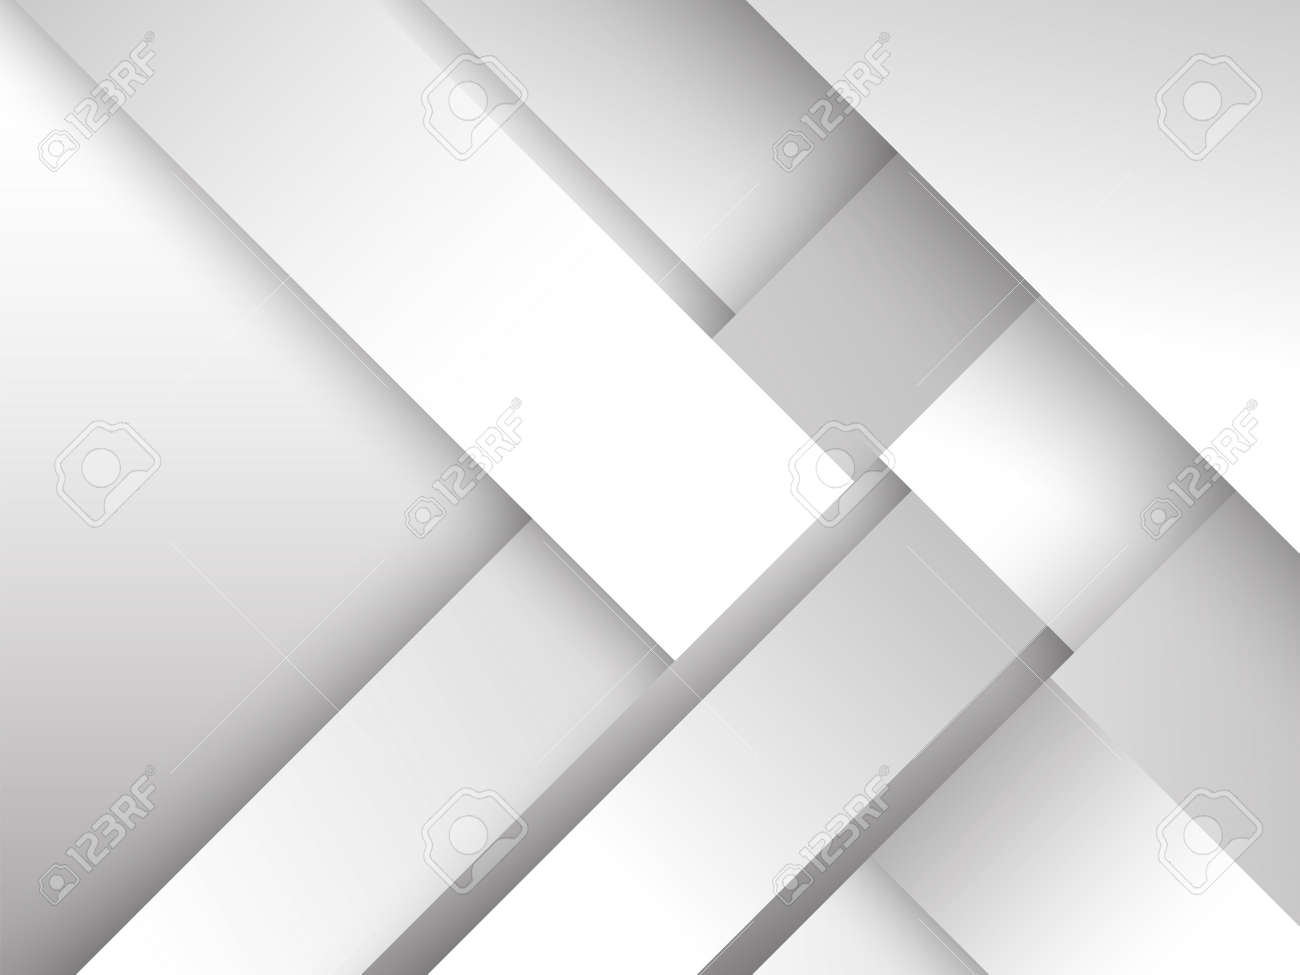 abstract white background with smooth lines - 145040924